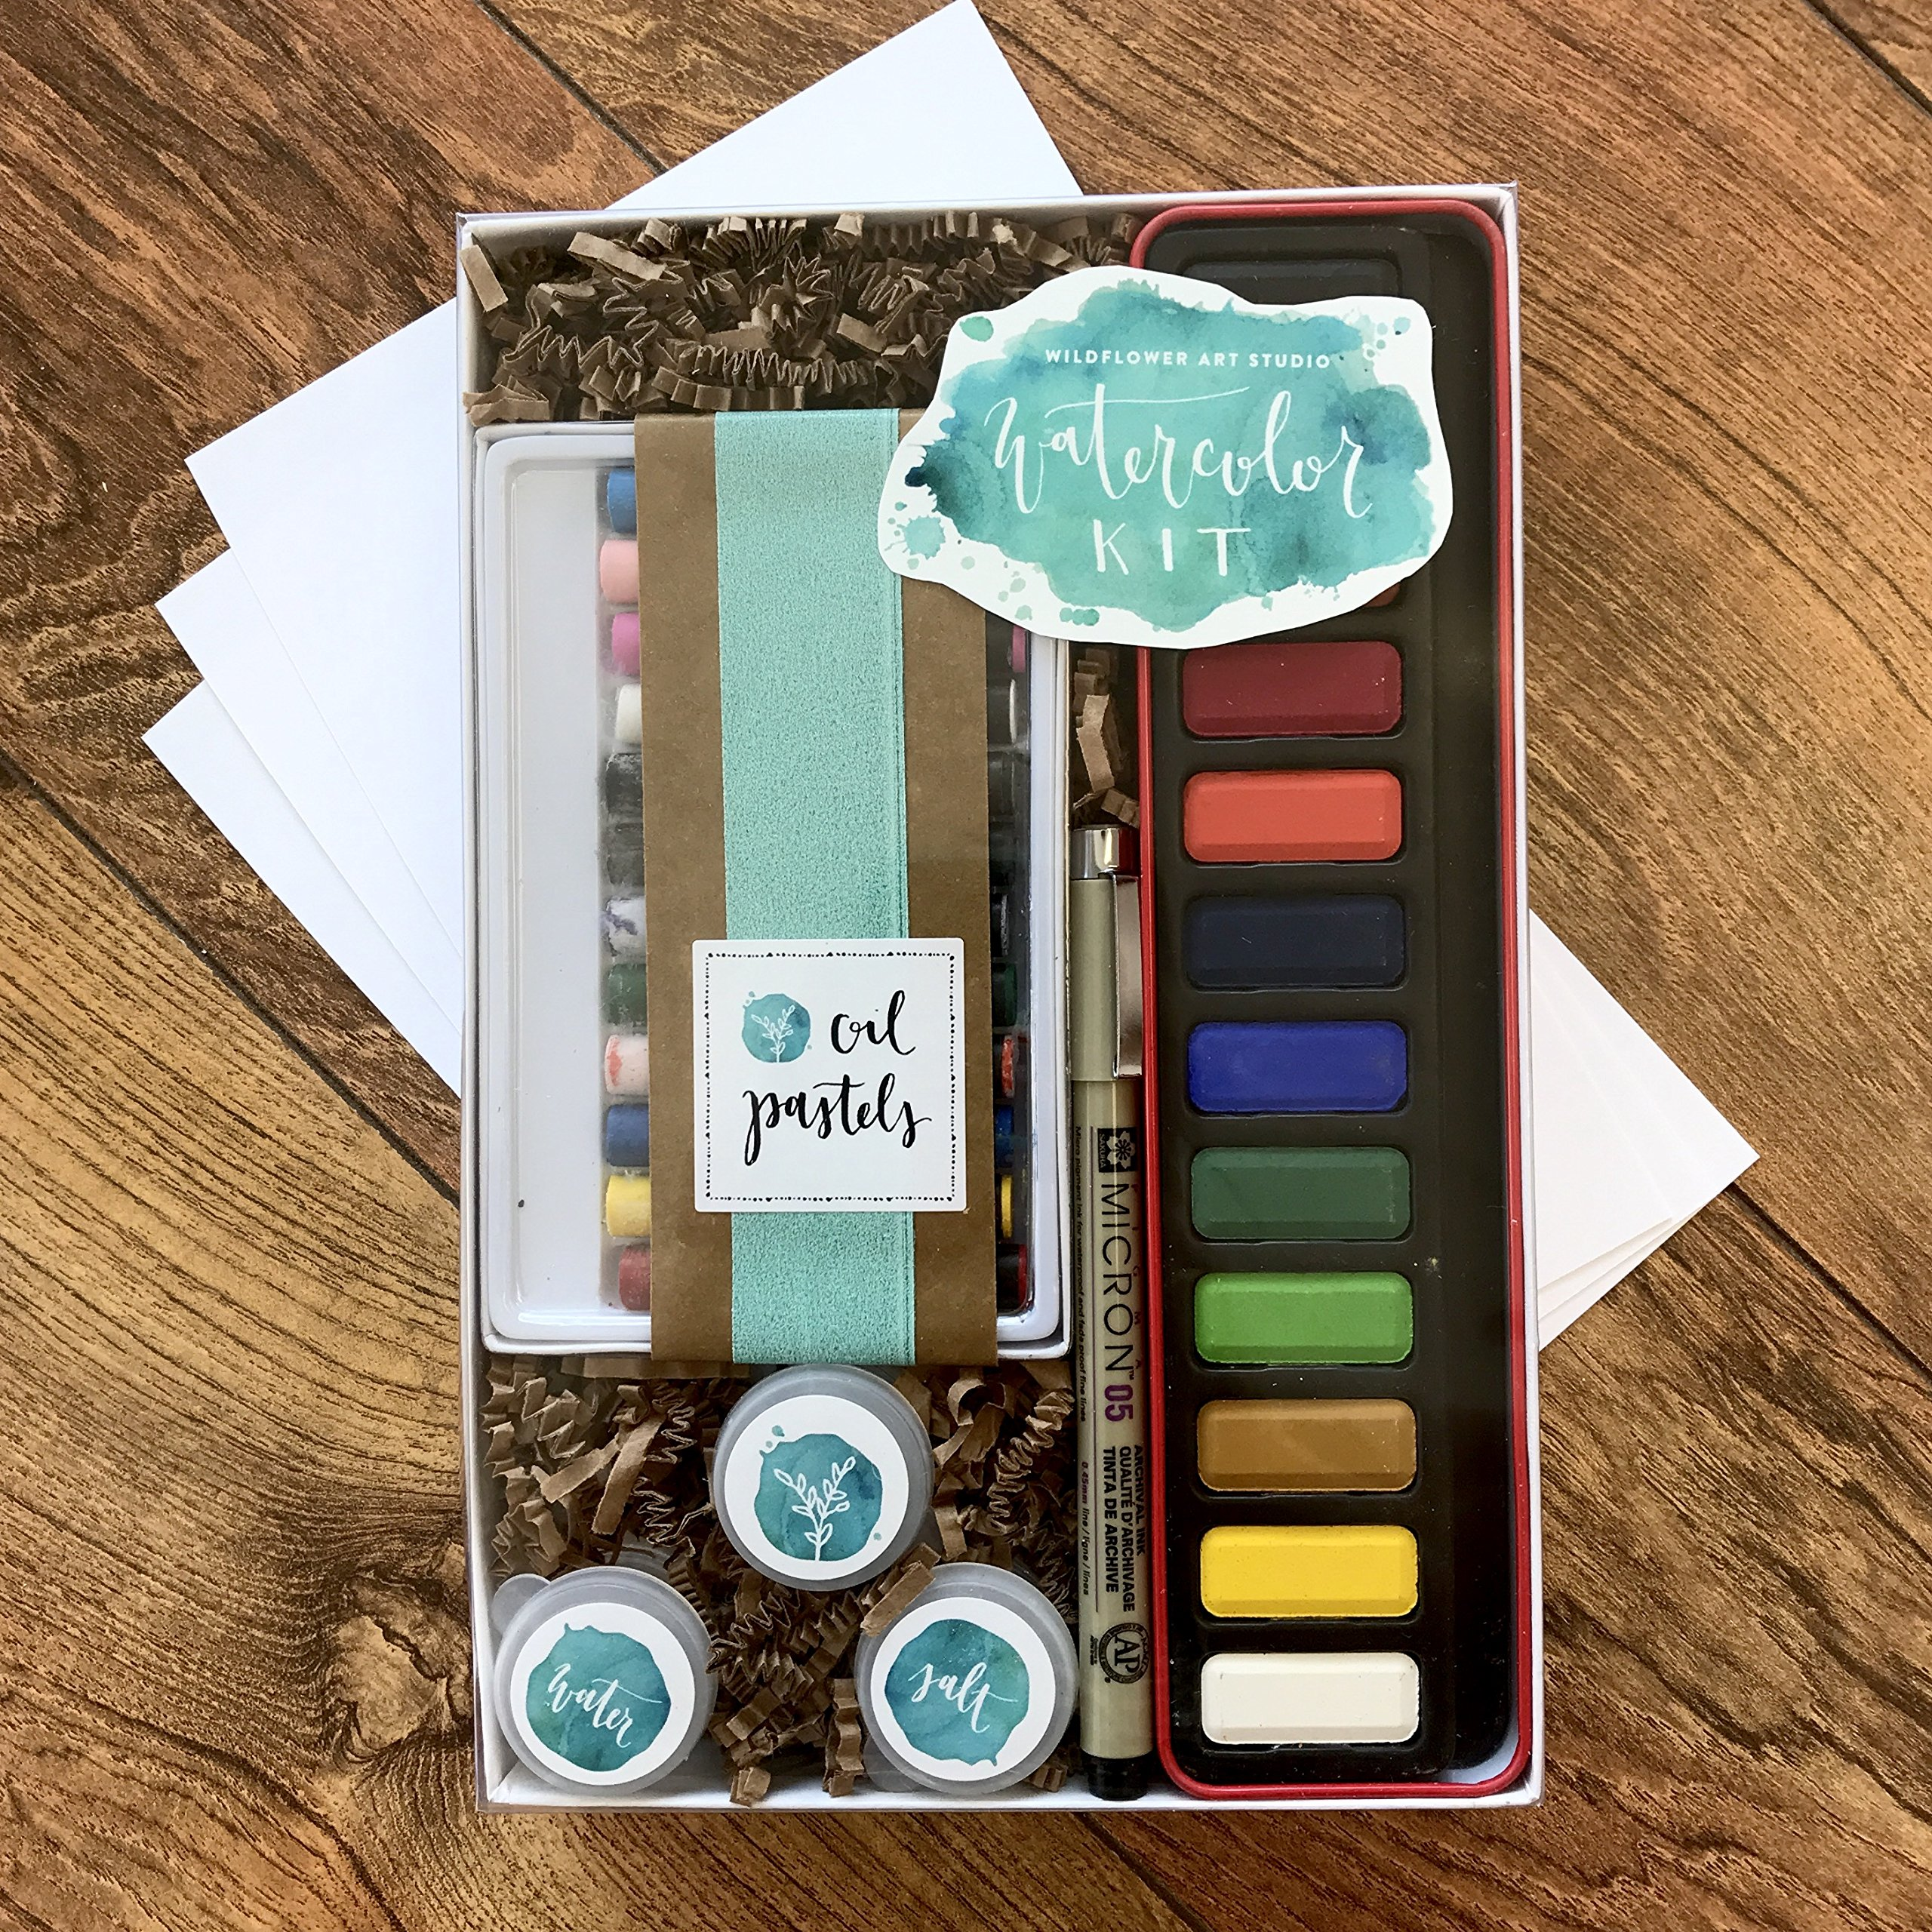 DIY Watercolor Kit for Beginners - Includes Project Guides & Detailed Instructions - Wildflower Art Studio's Signature ''Watercolor Class in a Box''